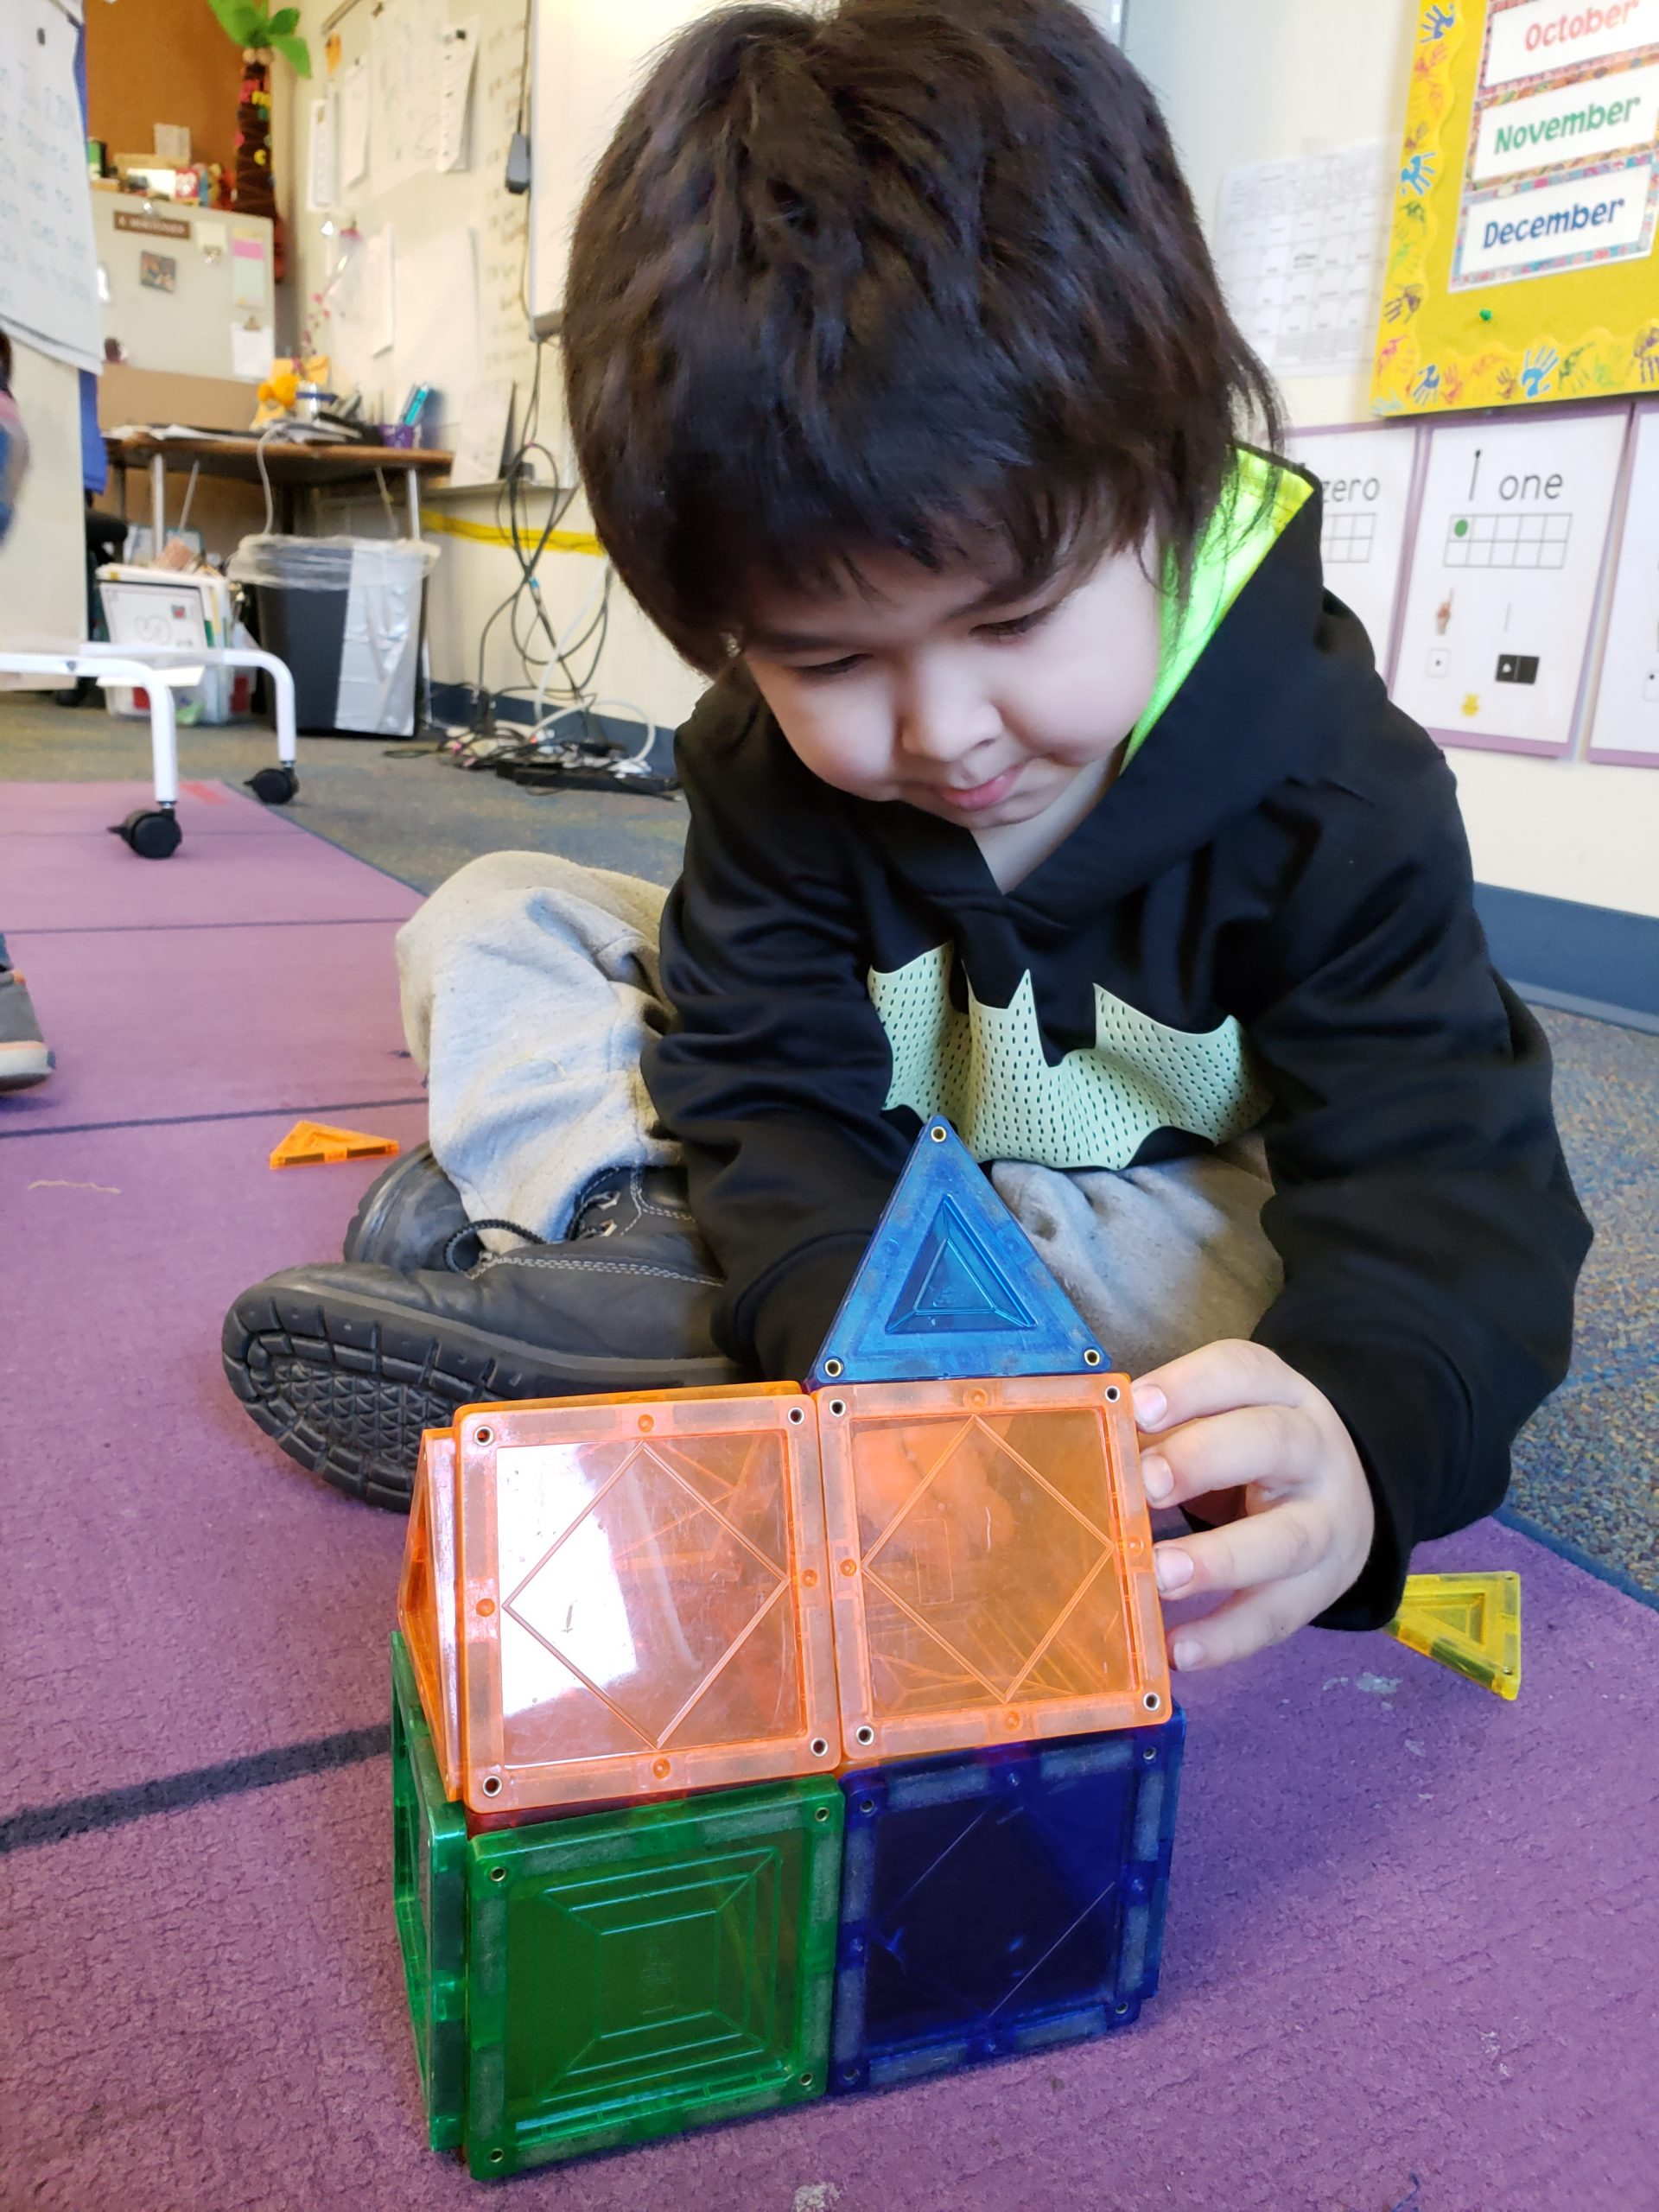 A young boy is playing with magnetic shapes to make a 3D house on the floor.